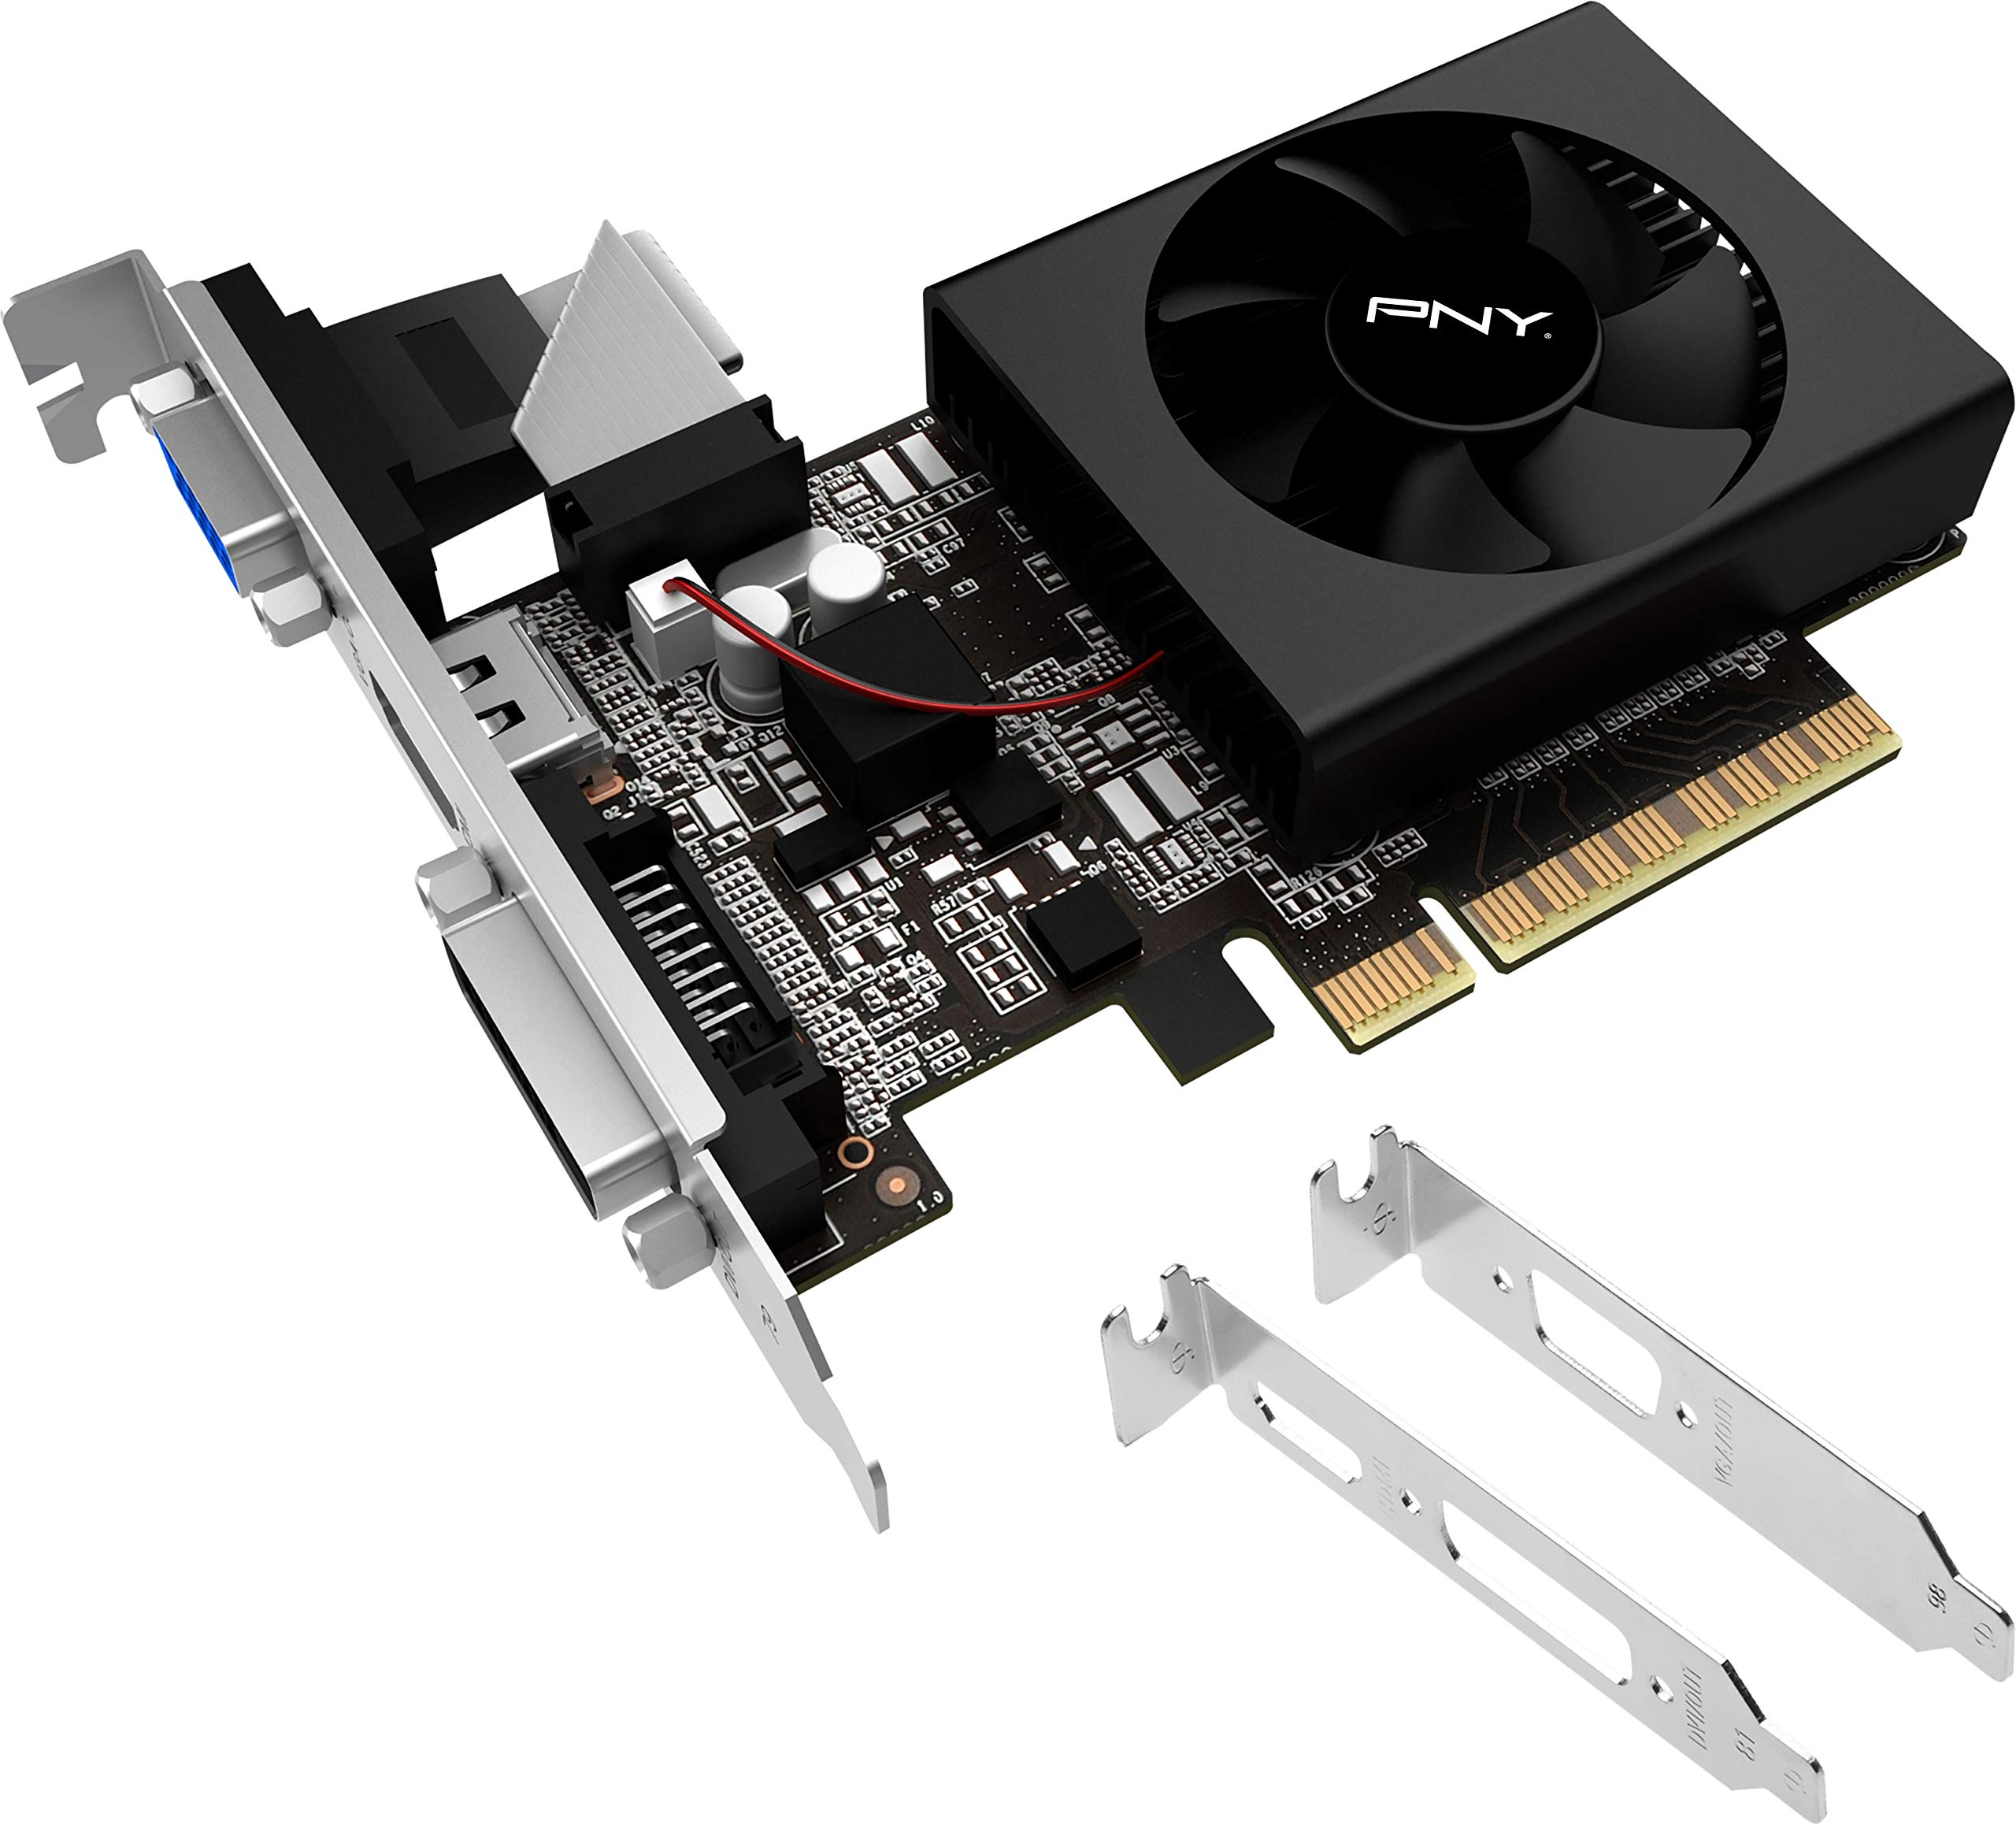 PNY GeForce GT 720 1GB DDR3 Graphics Cards VCGGT7201D3LXPB by PNY